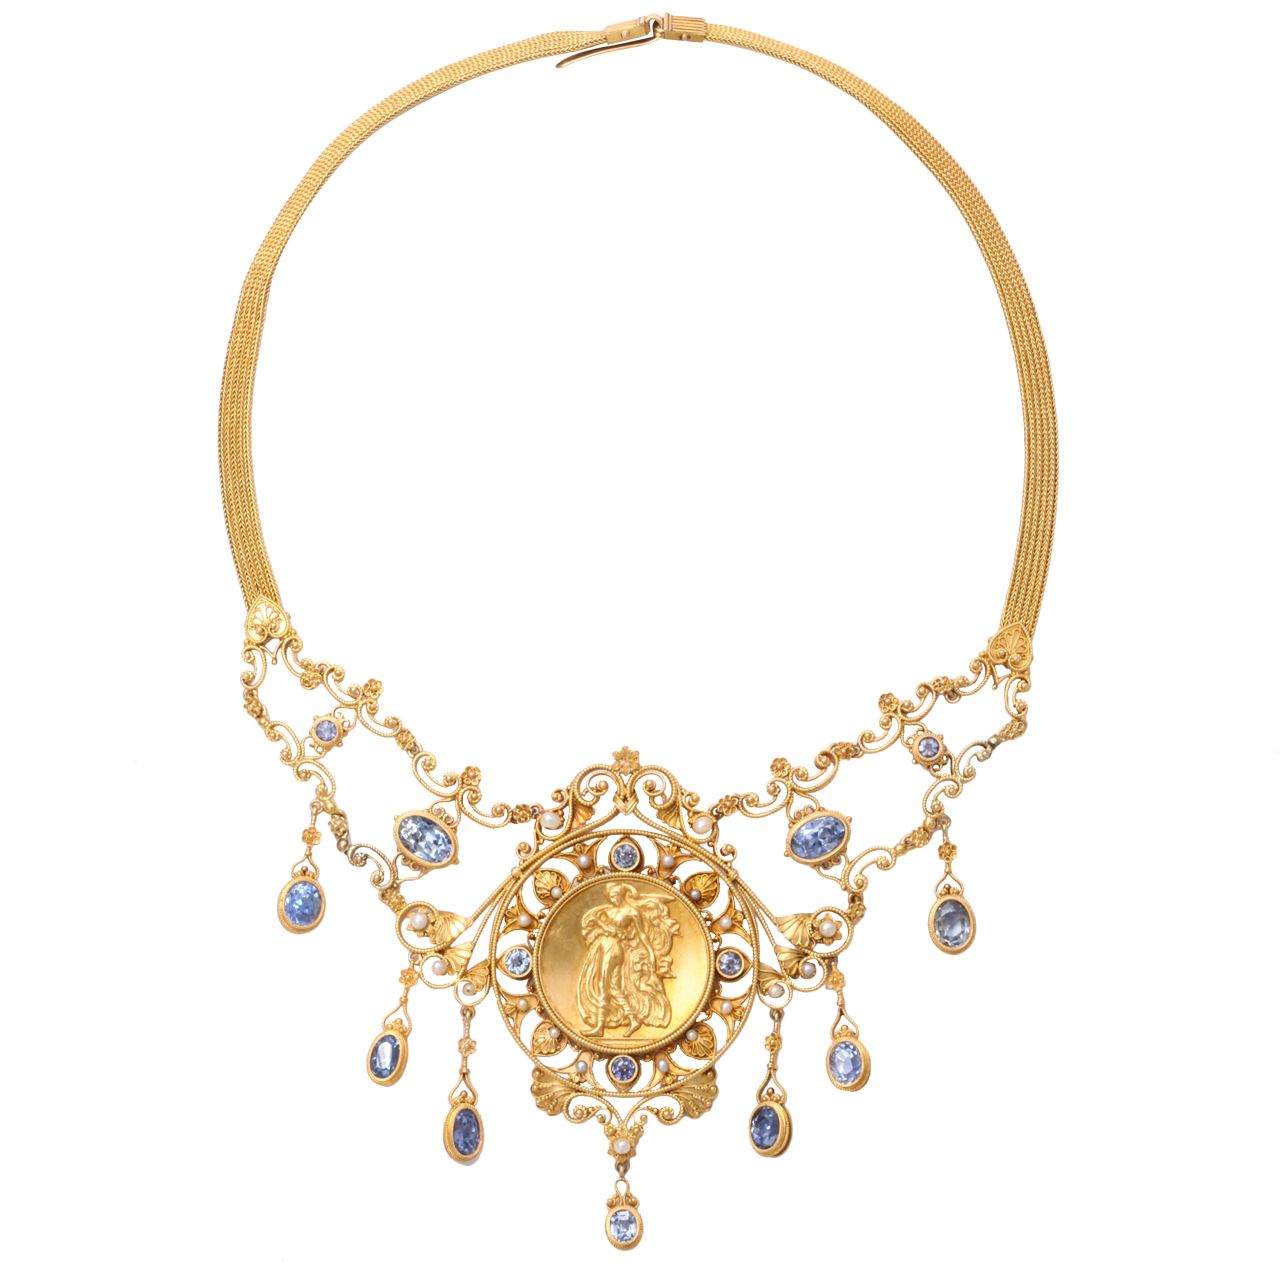 Antique Italian Renaissance Sapphire, Pearl and Gold Necklace 19century